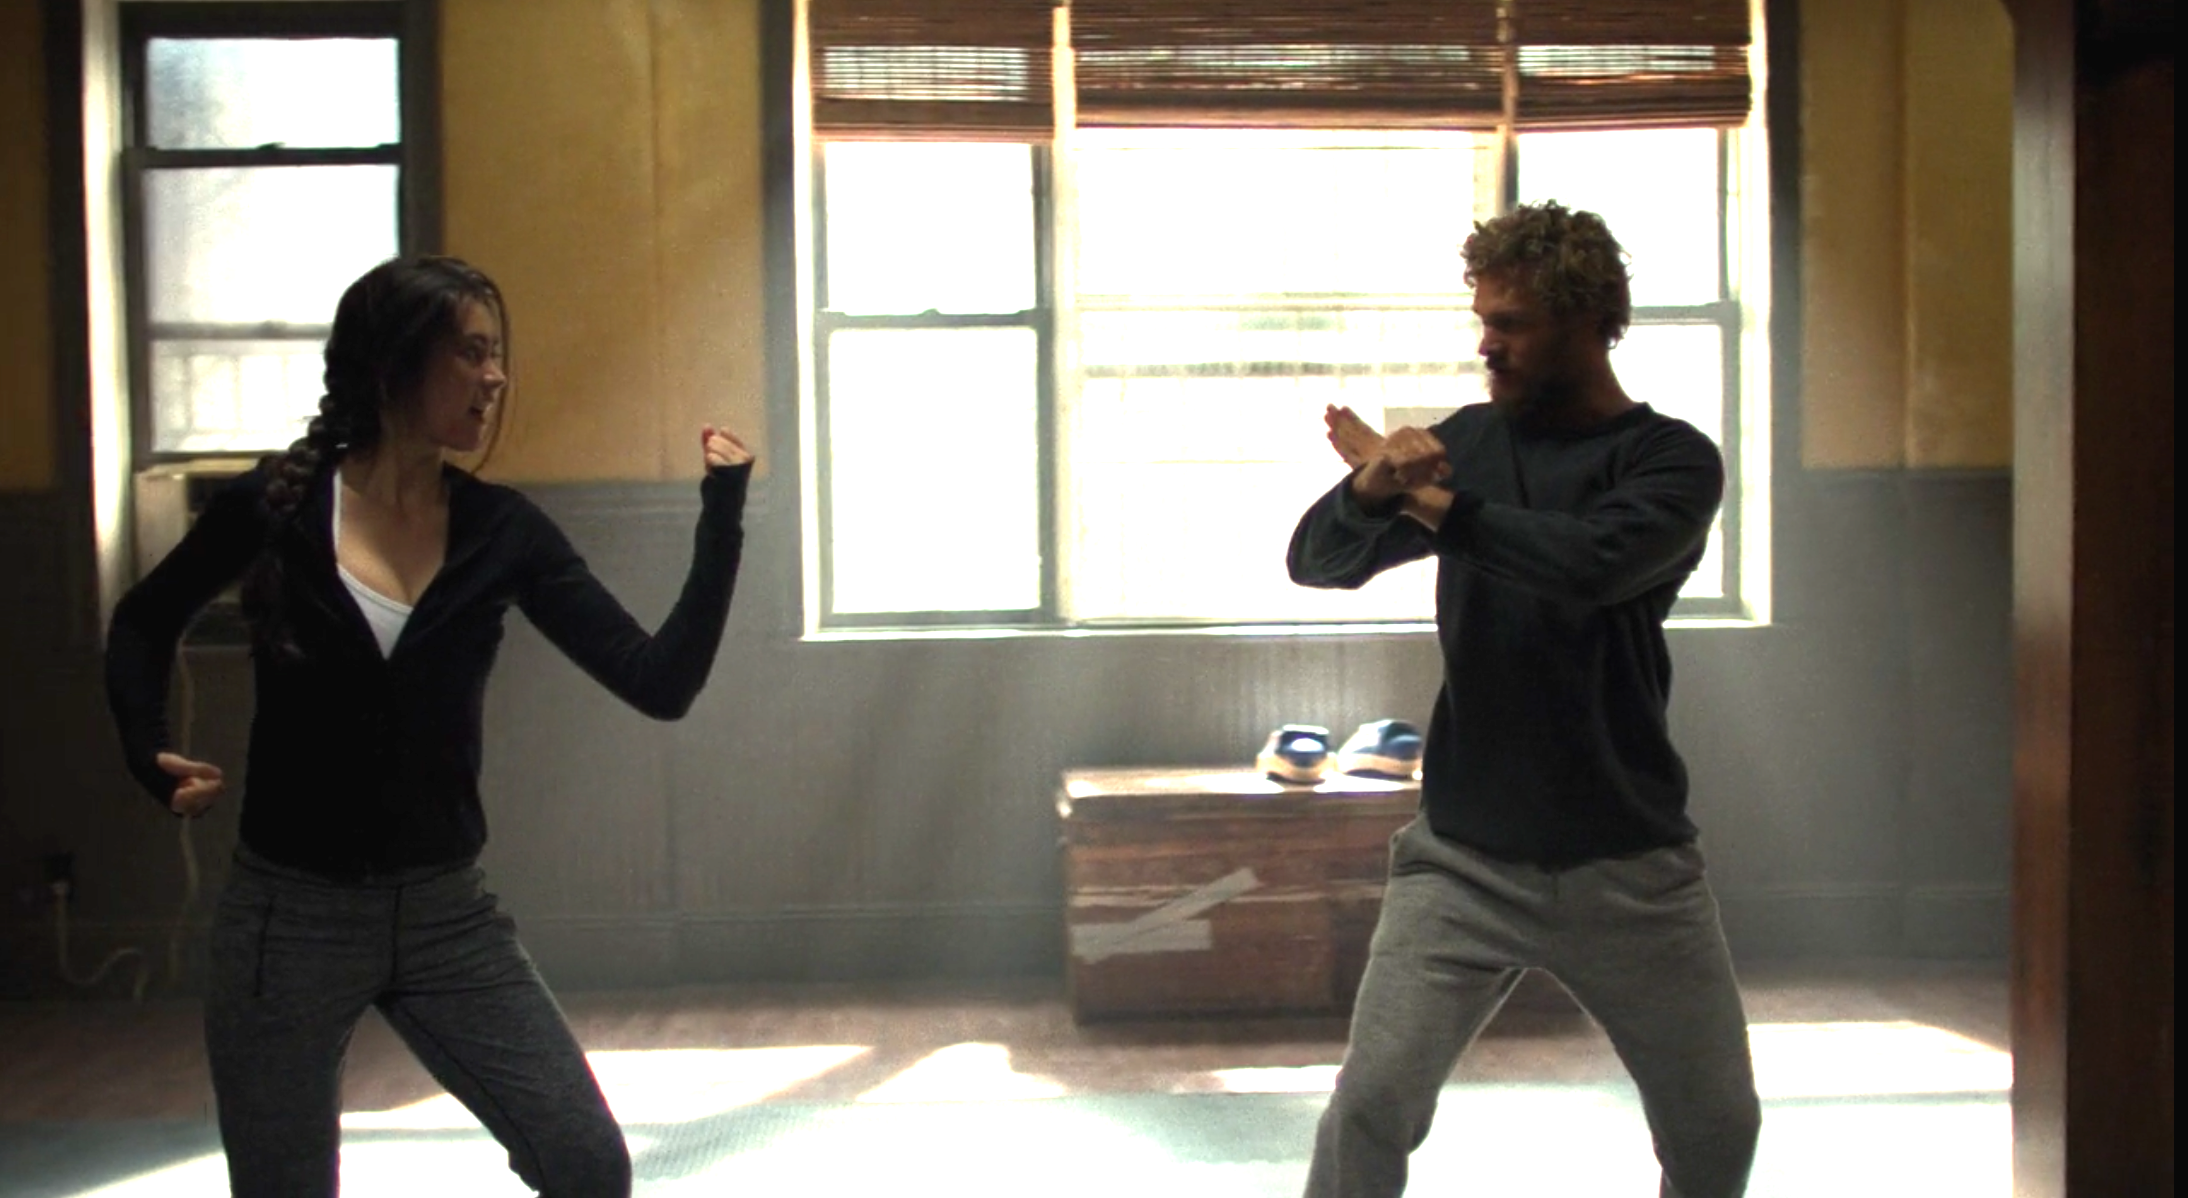 Jessica Henwick as Colleen Wing and Finn Jones as Danny Rand in 'Iron Fist